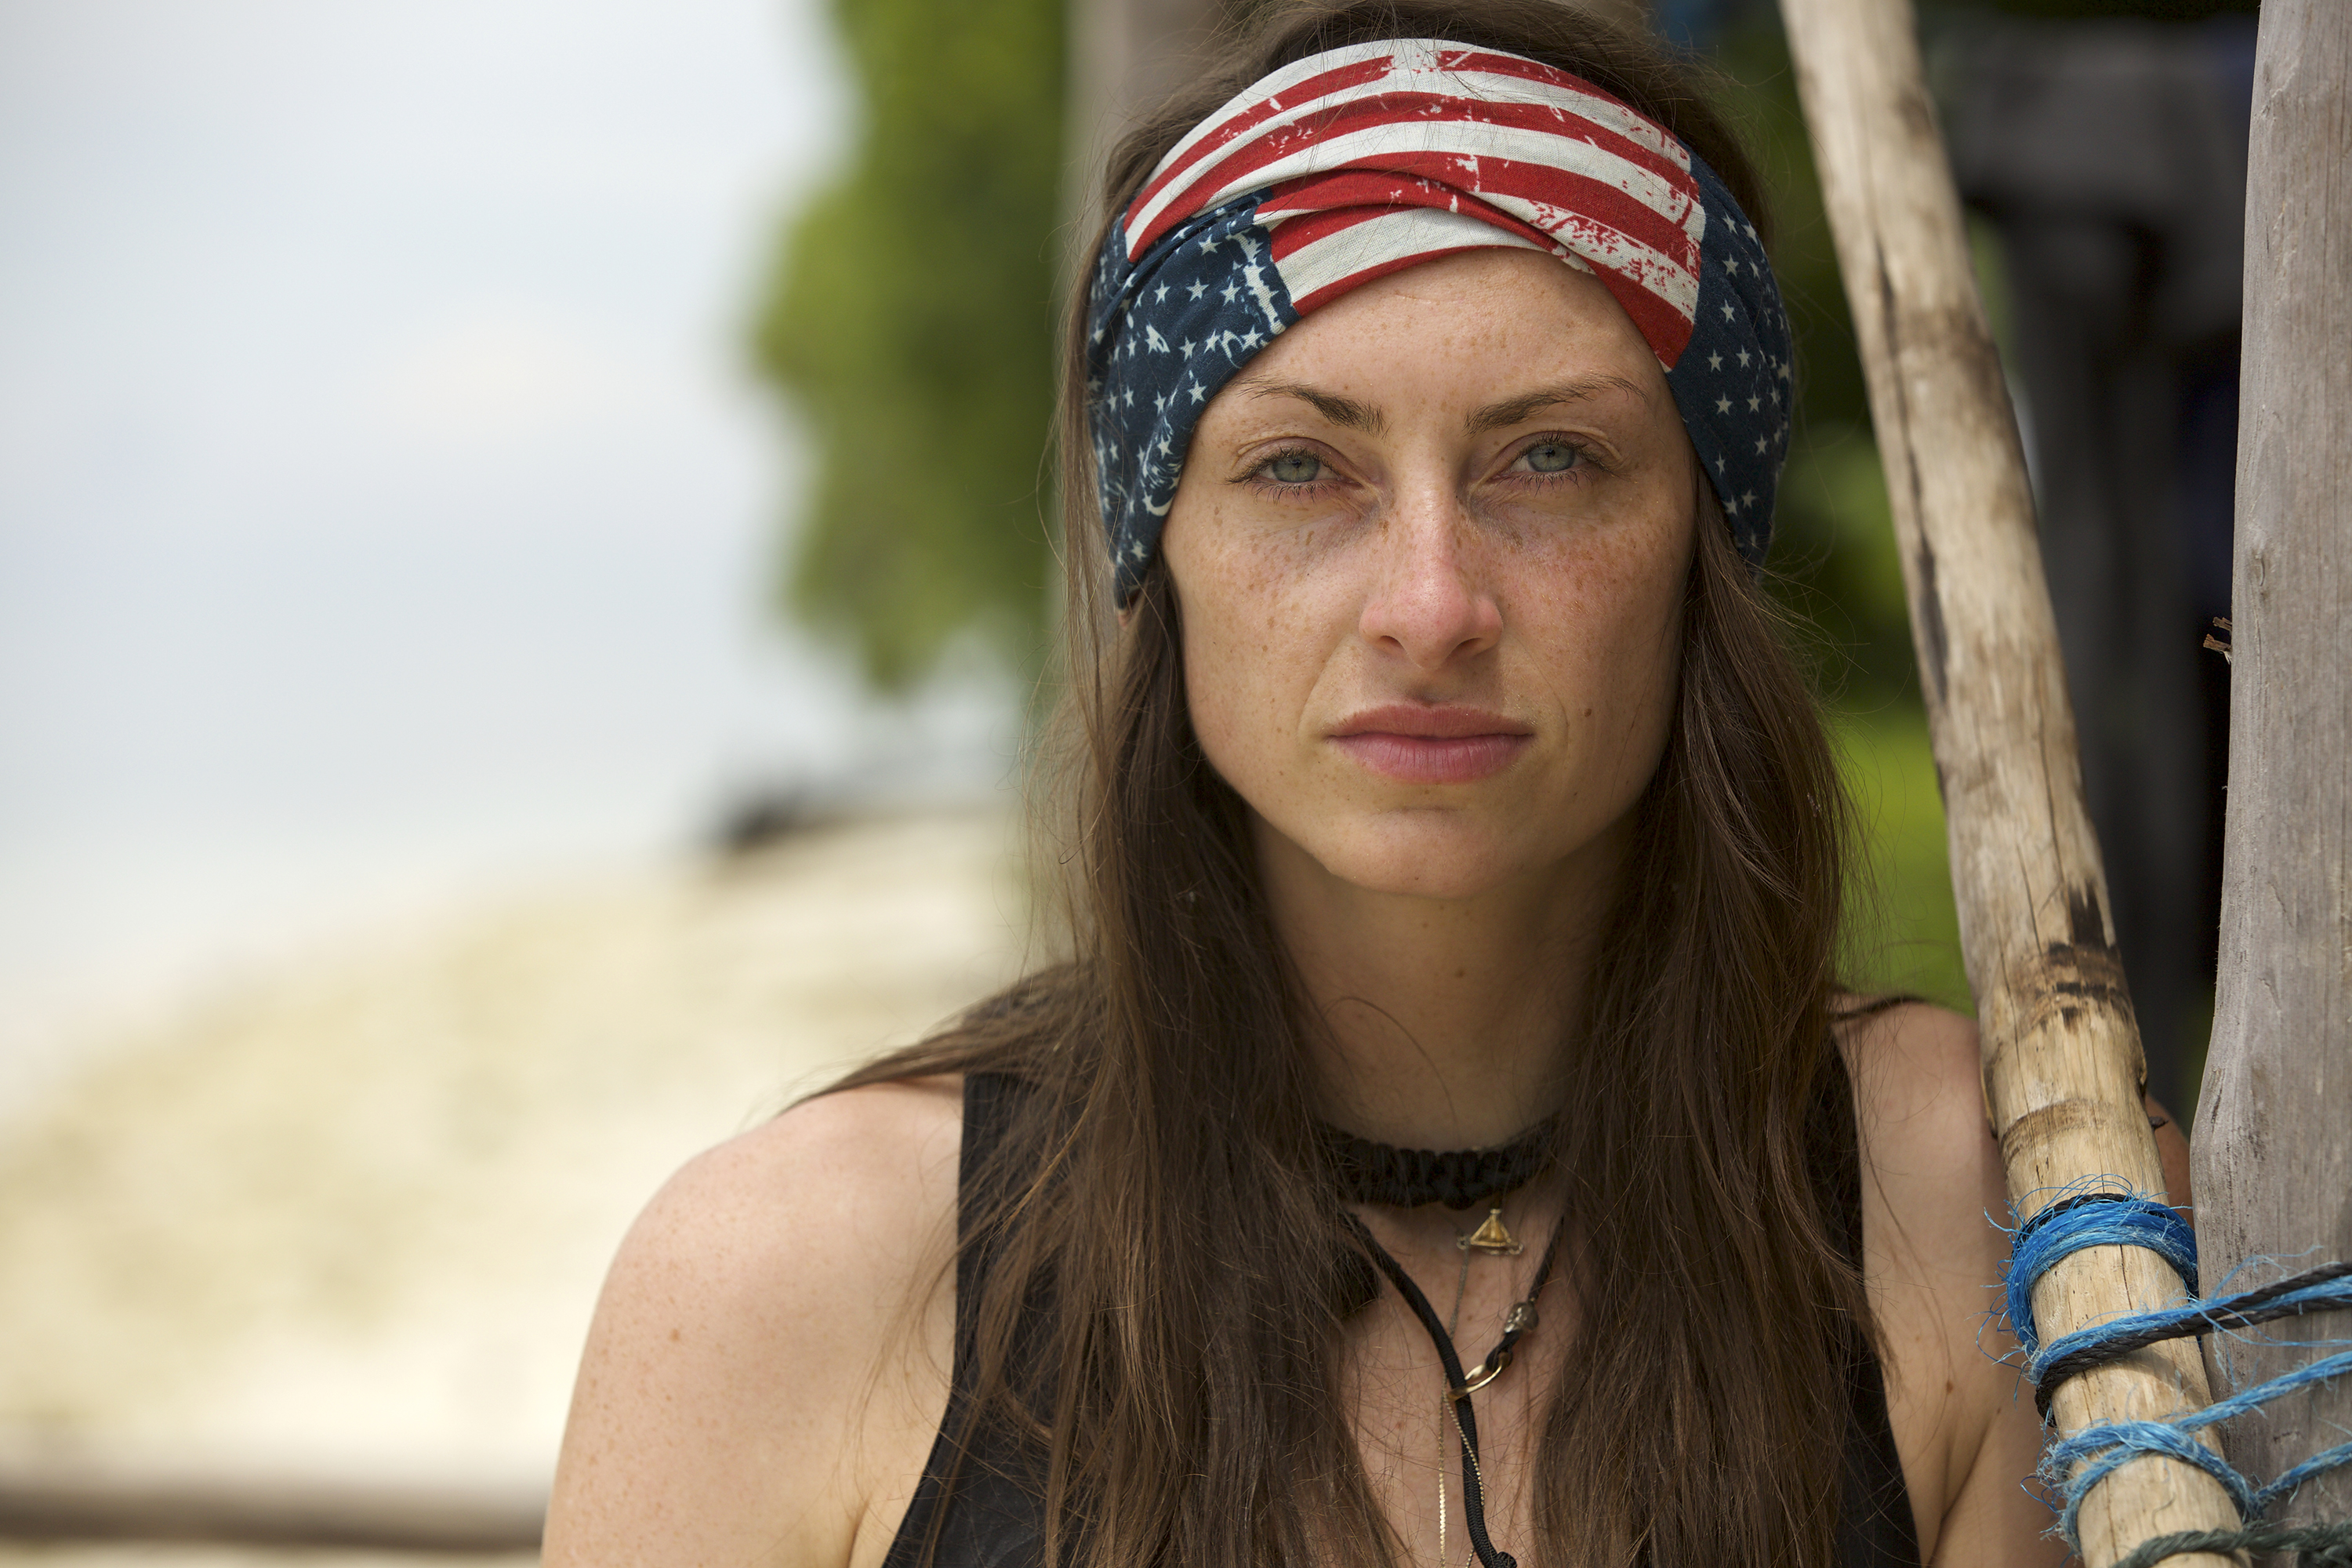 Castaways on ABC: Cancelled or Season 2? (Release Date